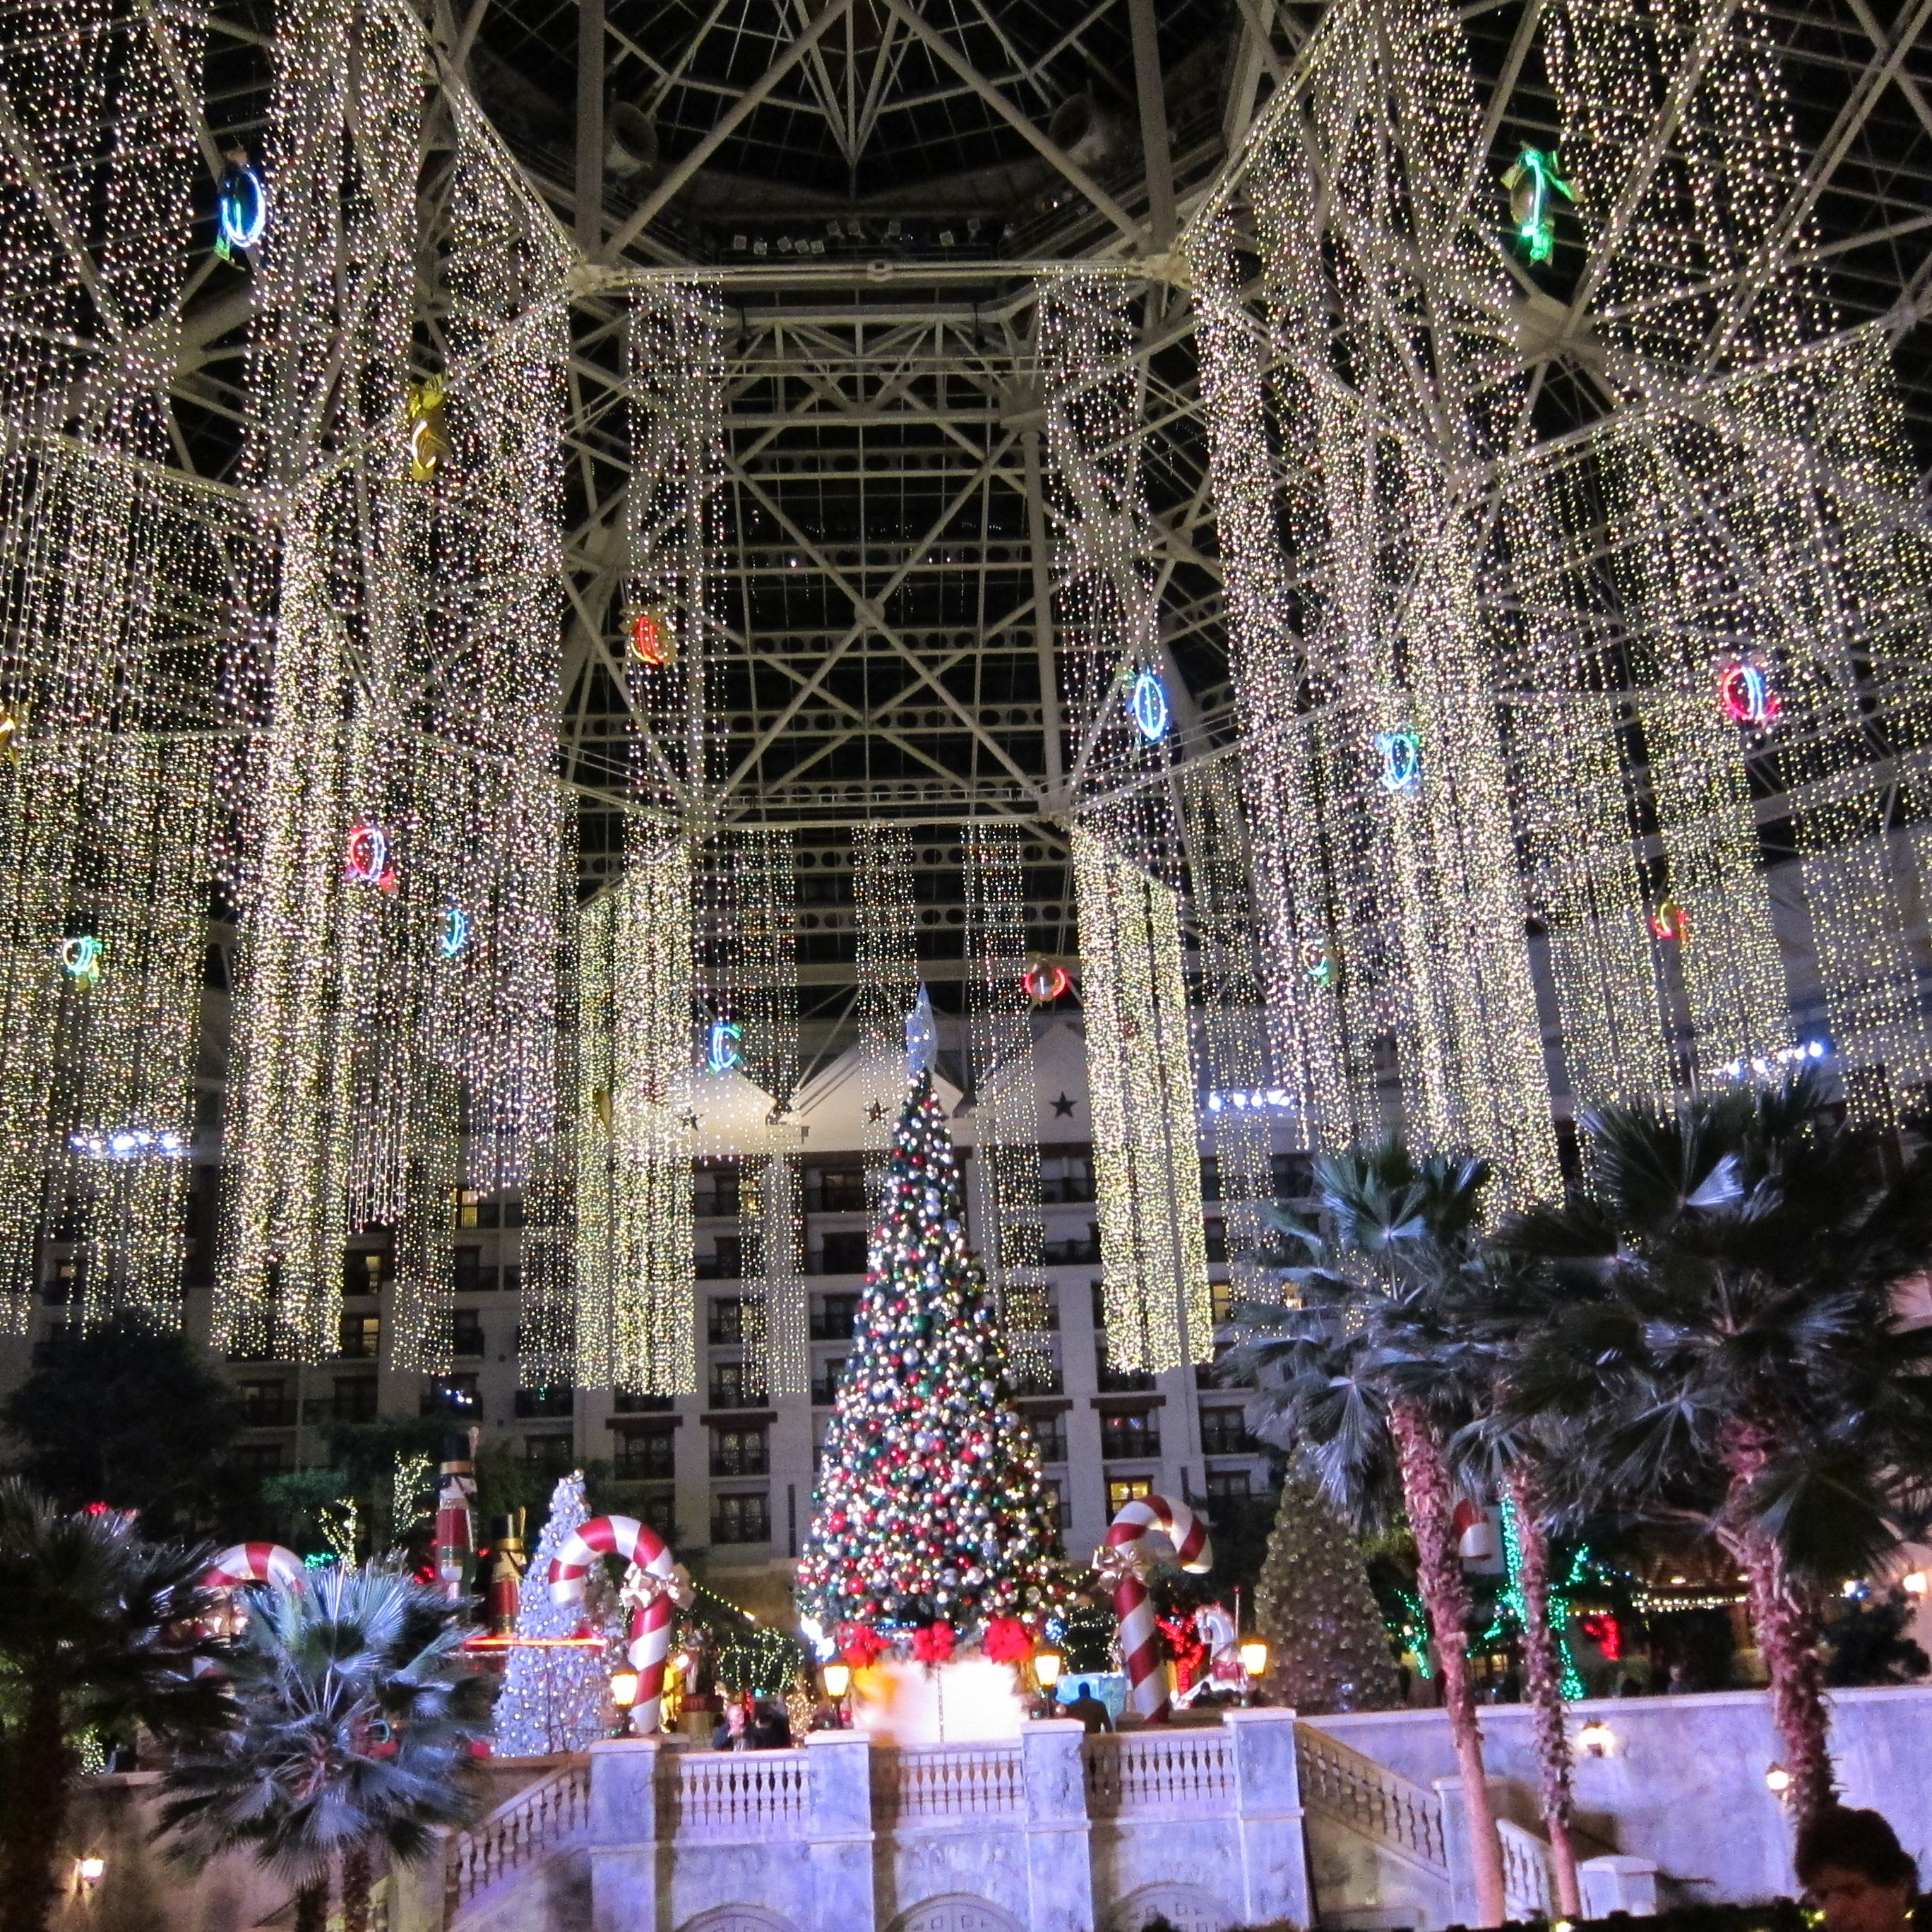 Christmas Lights Display (Gaylord, Grapevine, Texas) | Places I ...